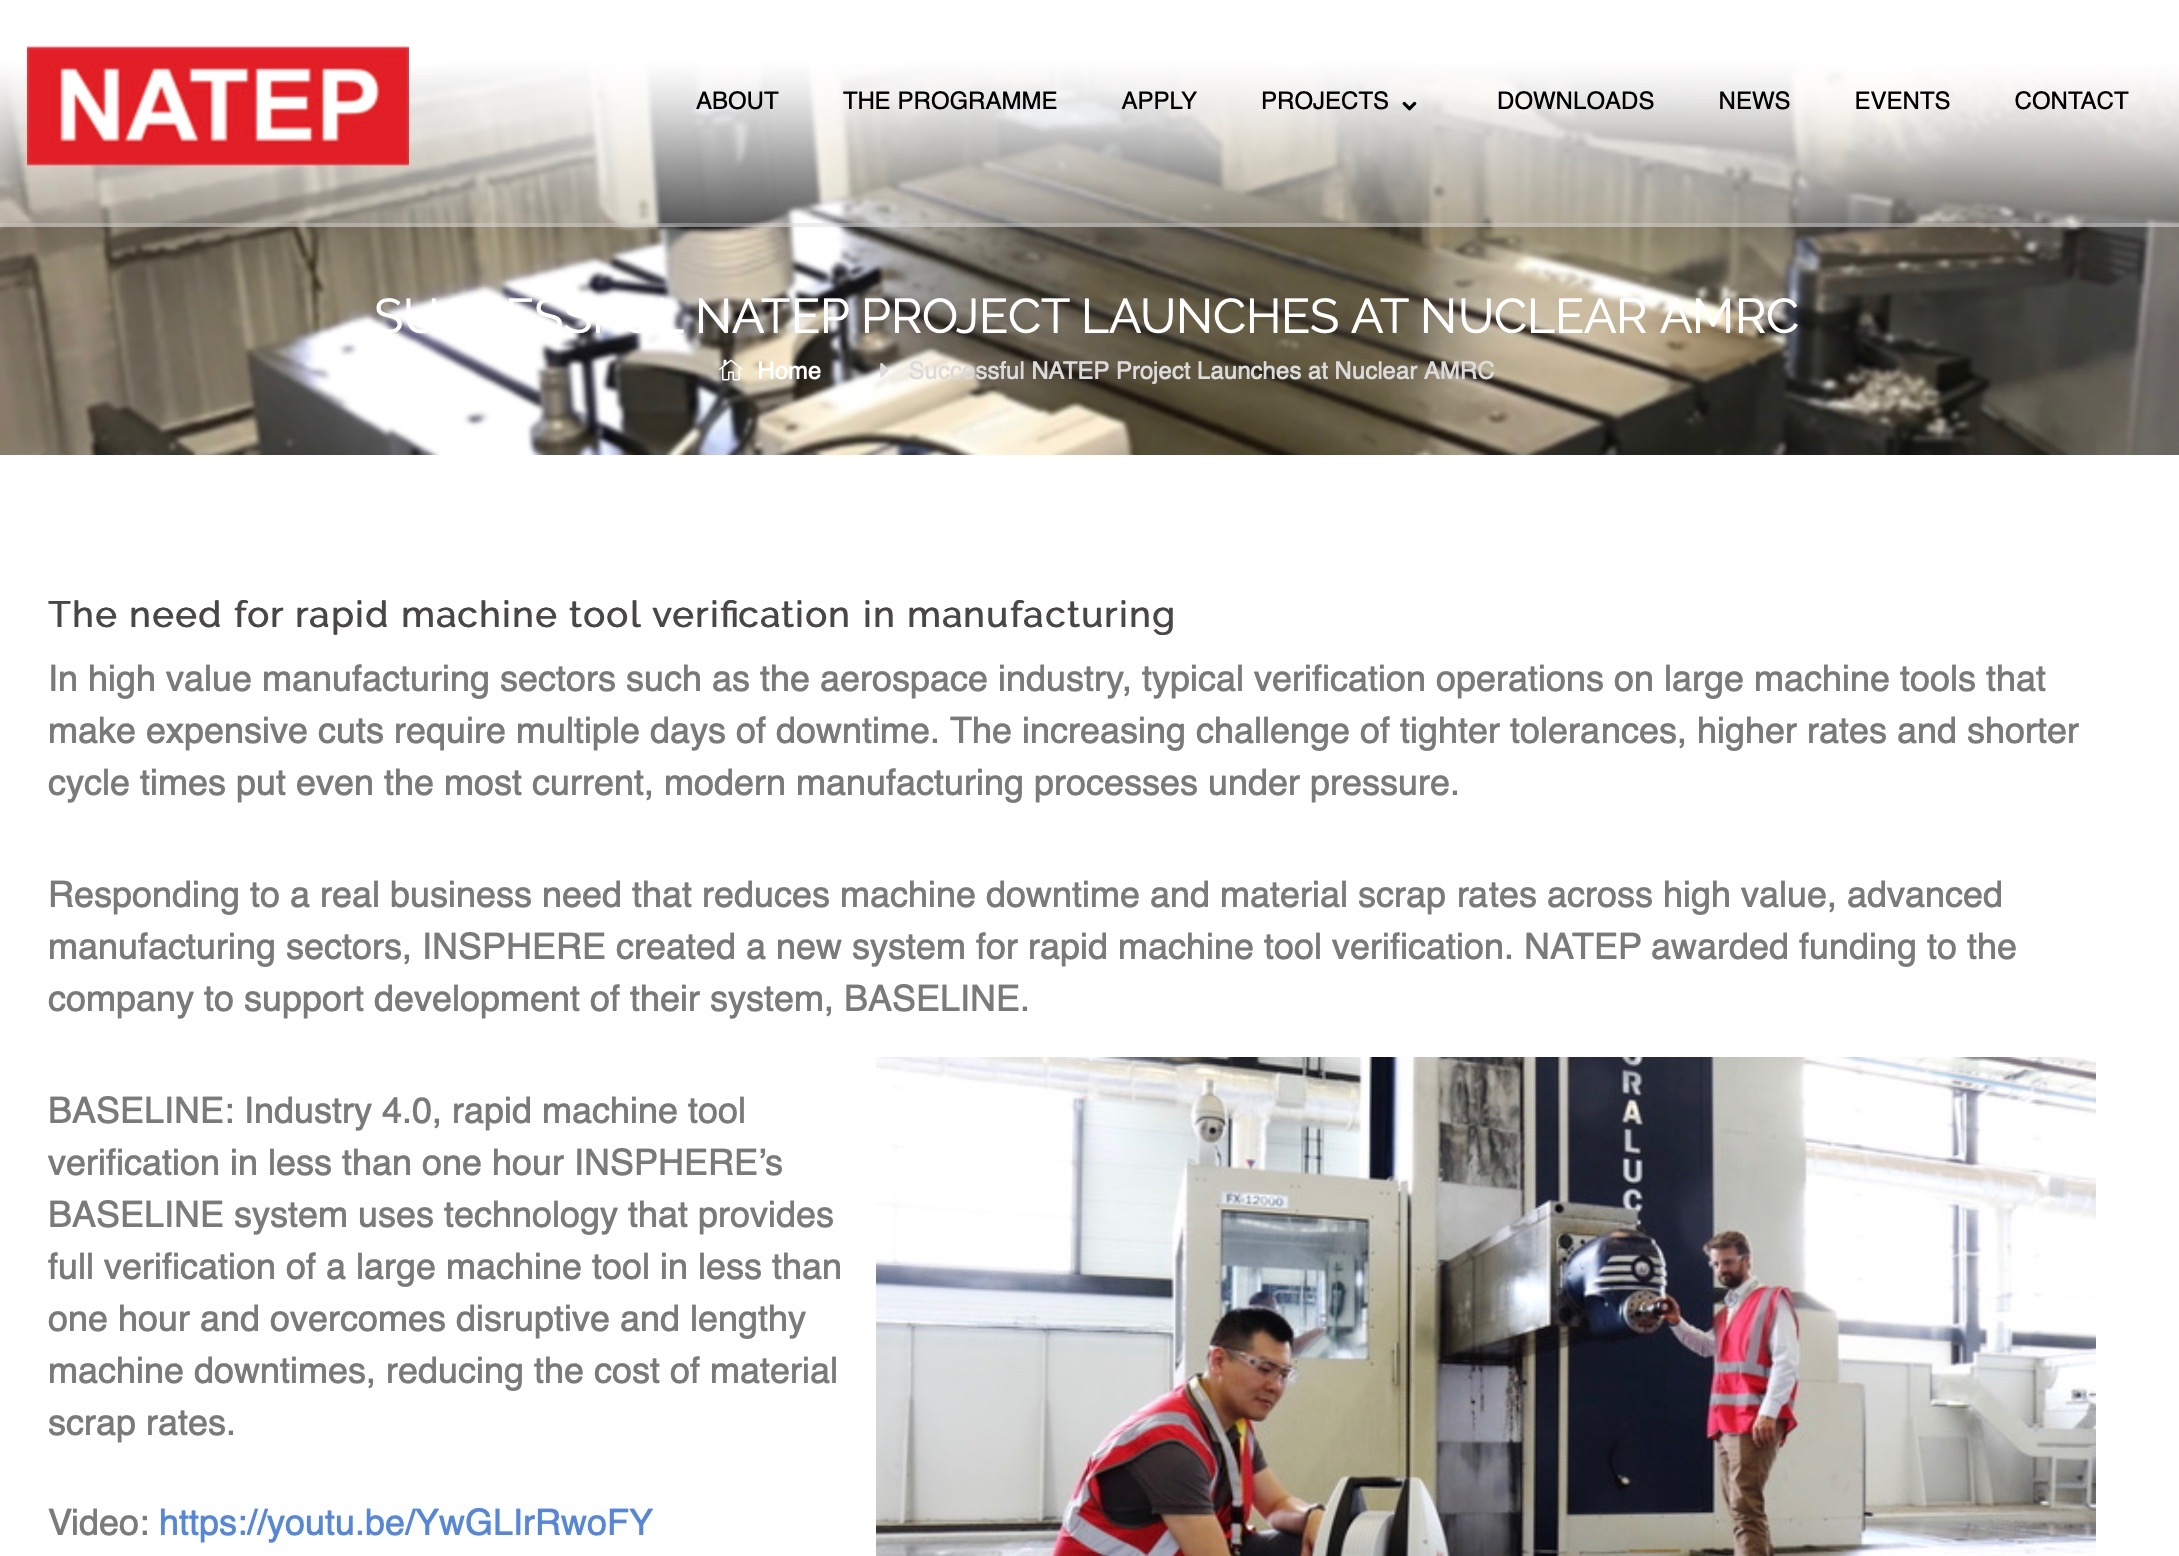 NATEP Project News